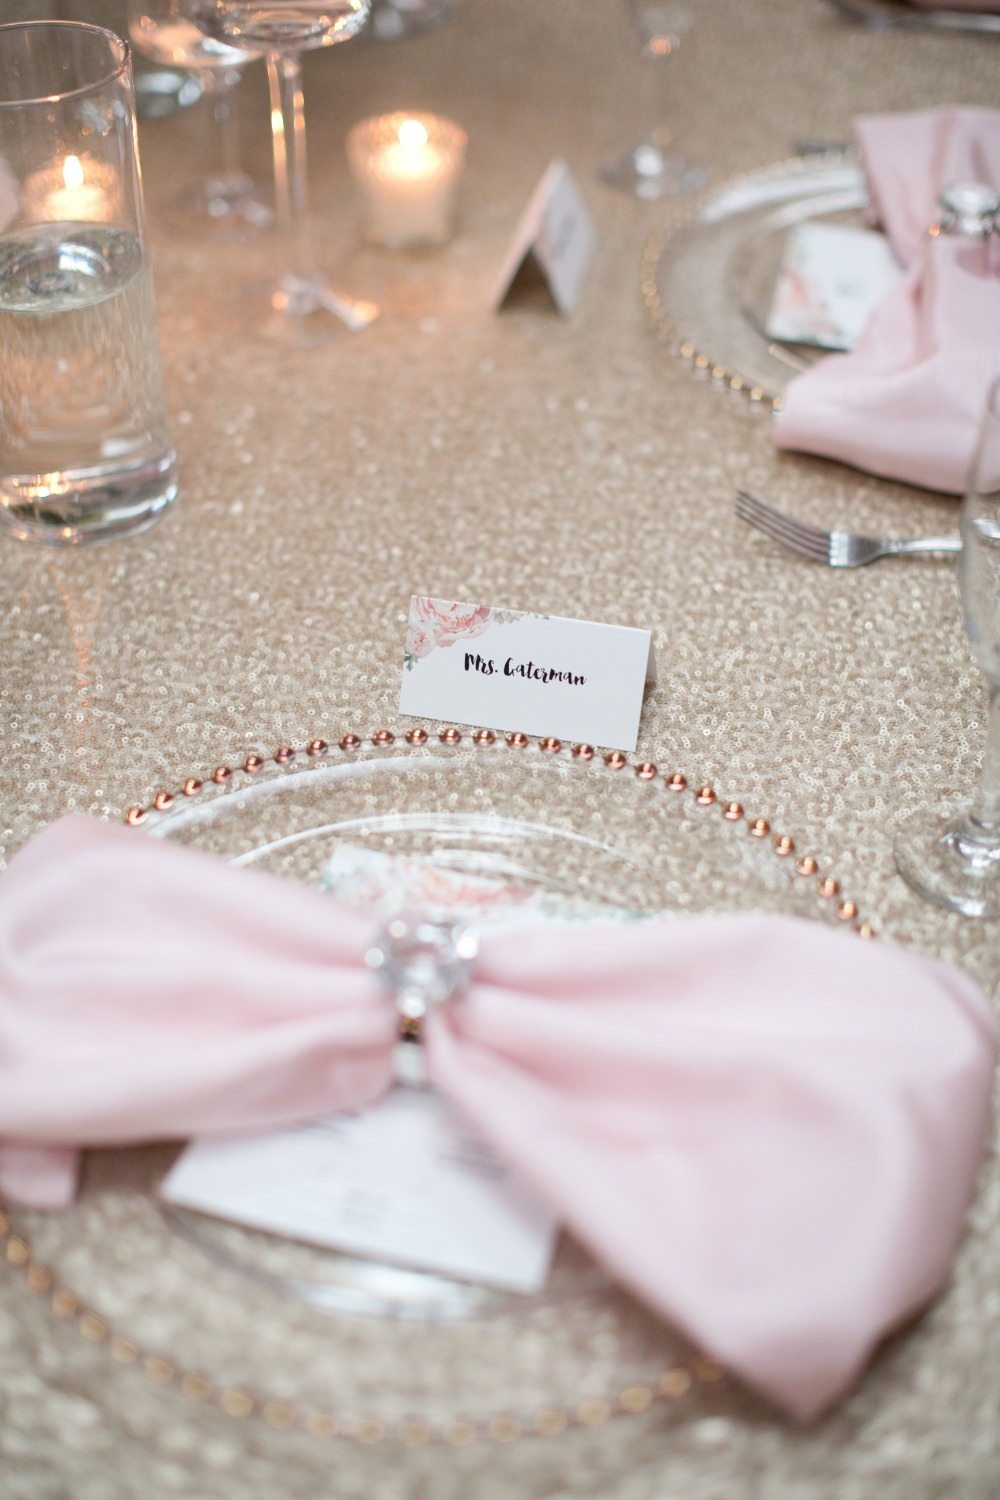 Table scape decor with pink bow napkins